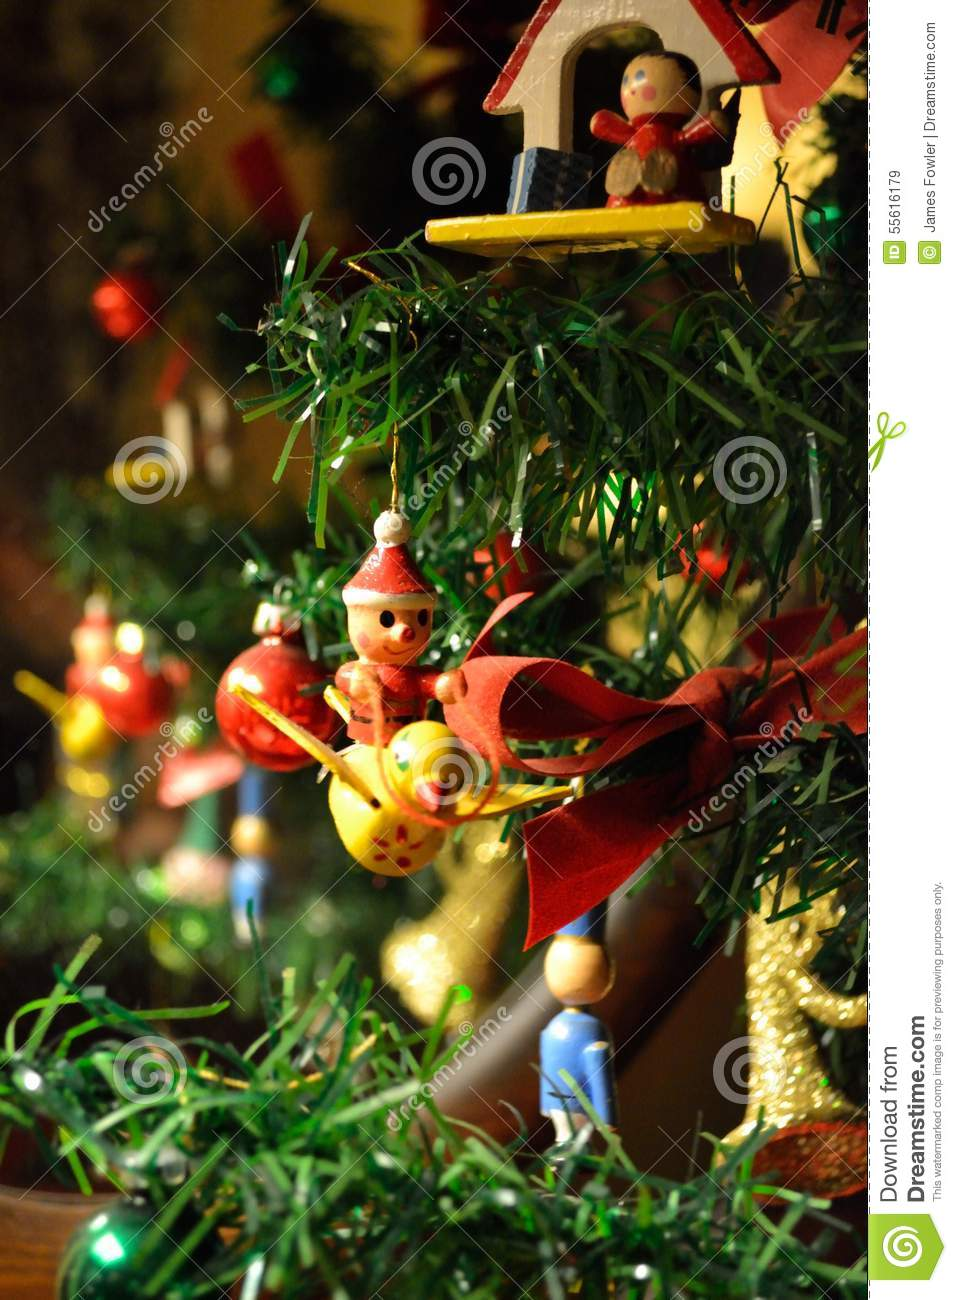 Old Fashioned Christmas Ornaments On A Tree Stock Image - Image of ...